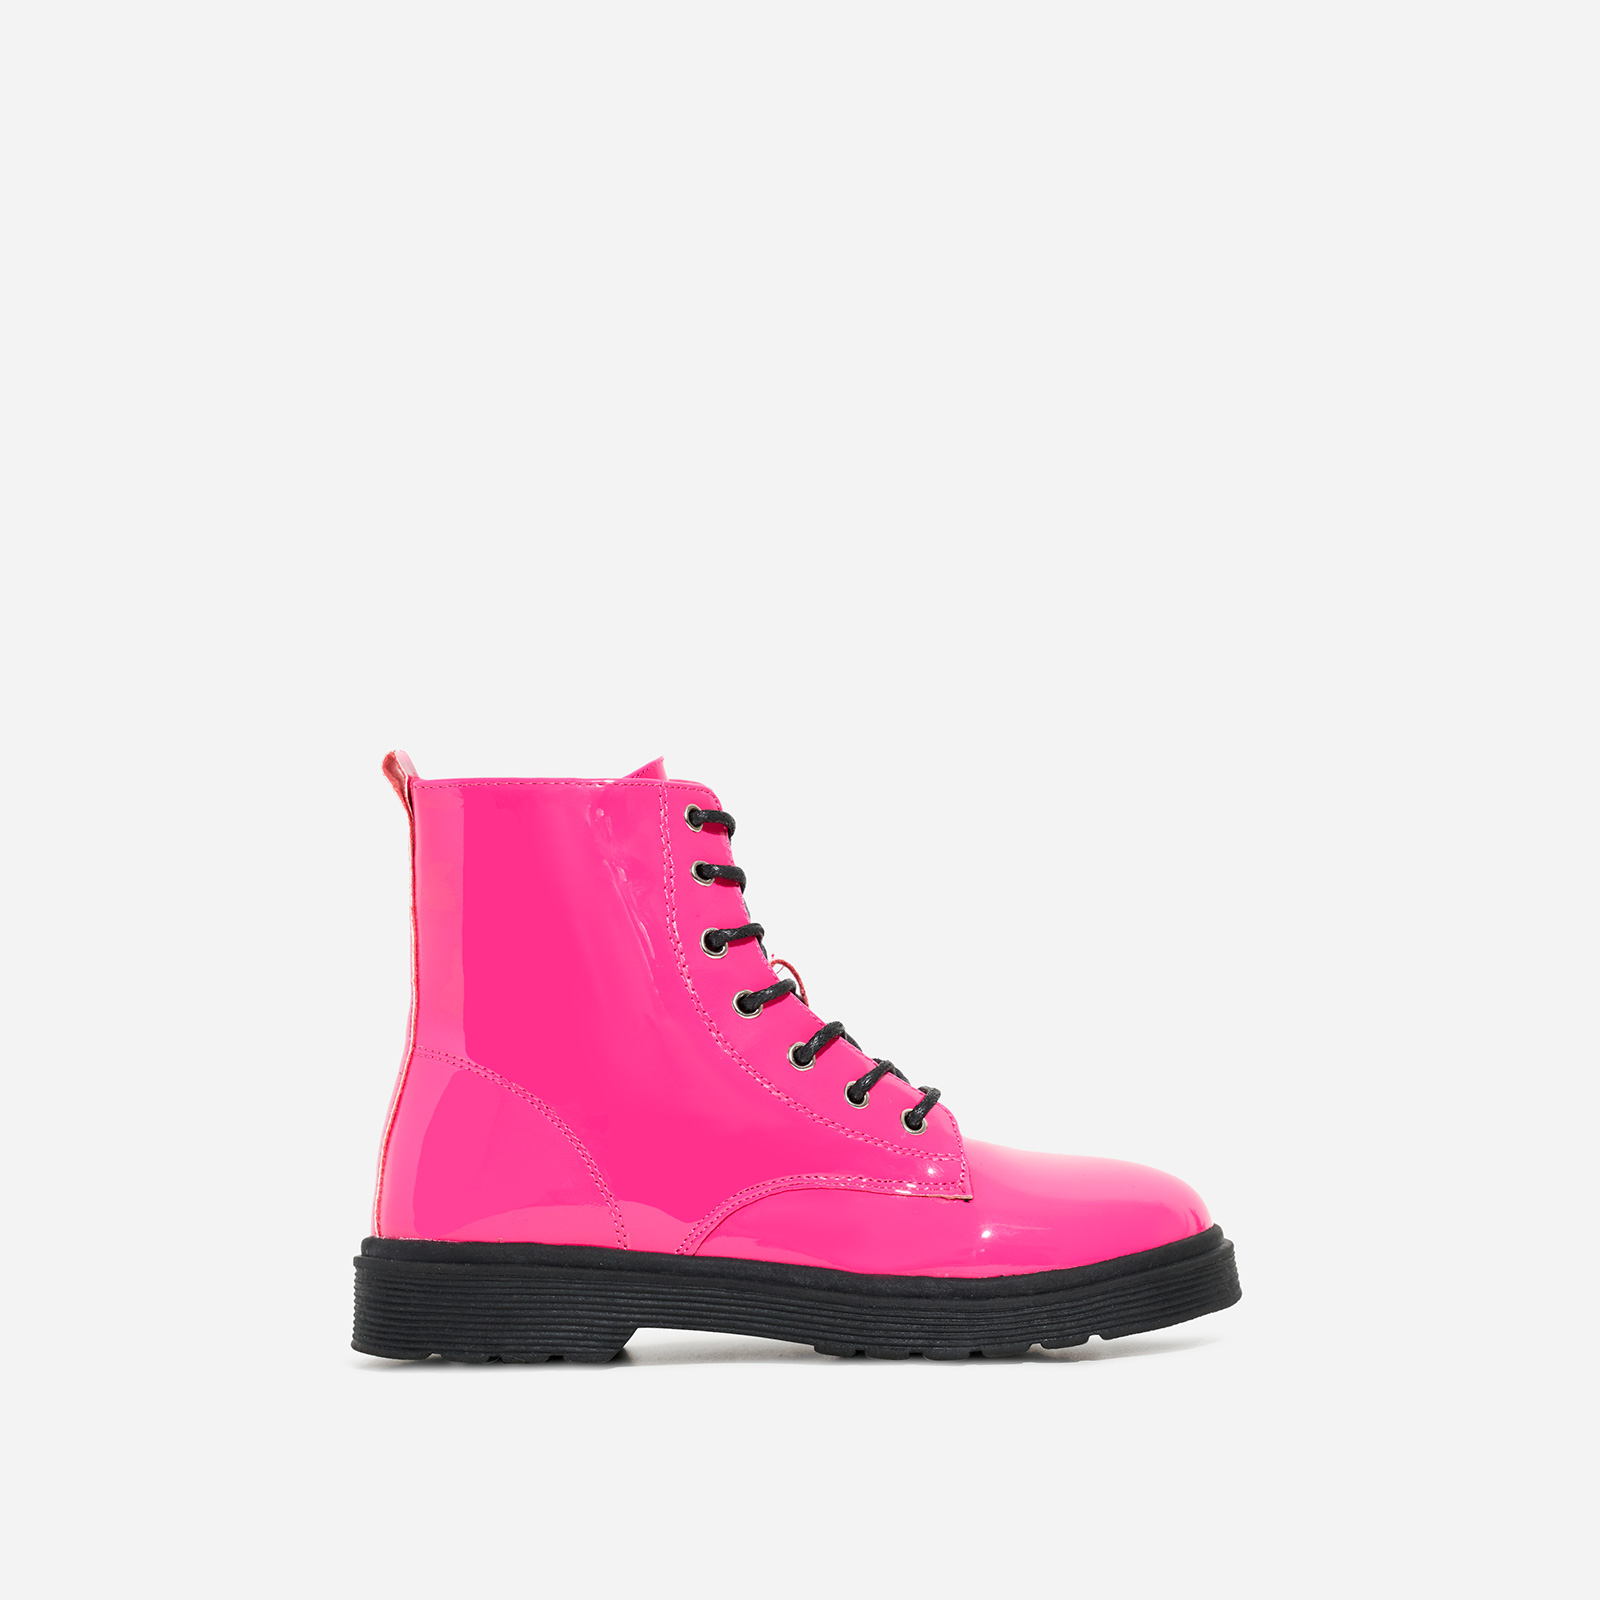 Poppin Girl's Lace Up Ankle Biker Boot In Pink Patent